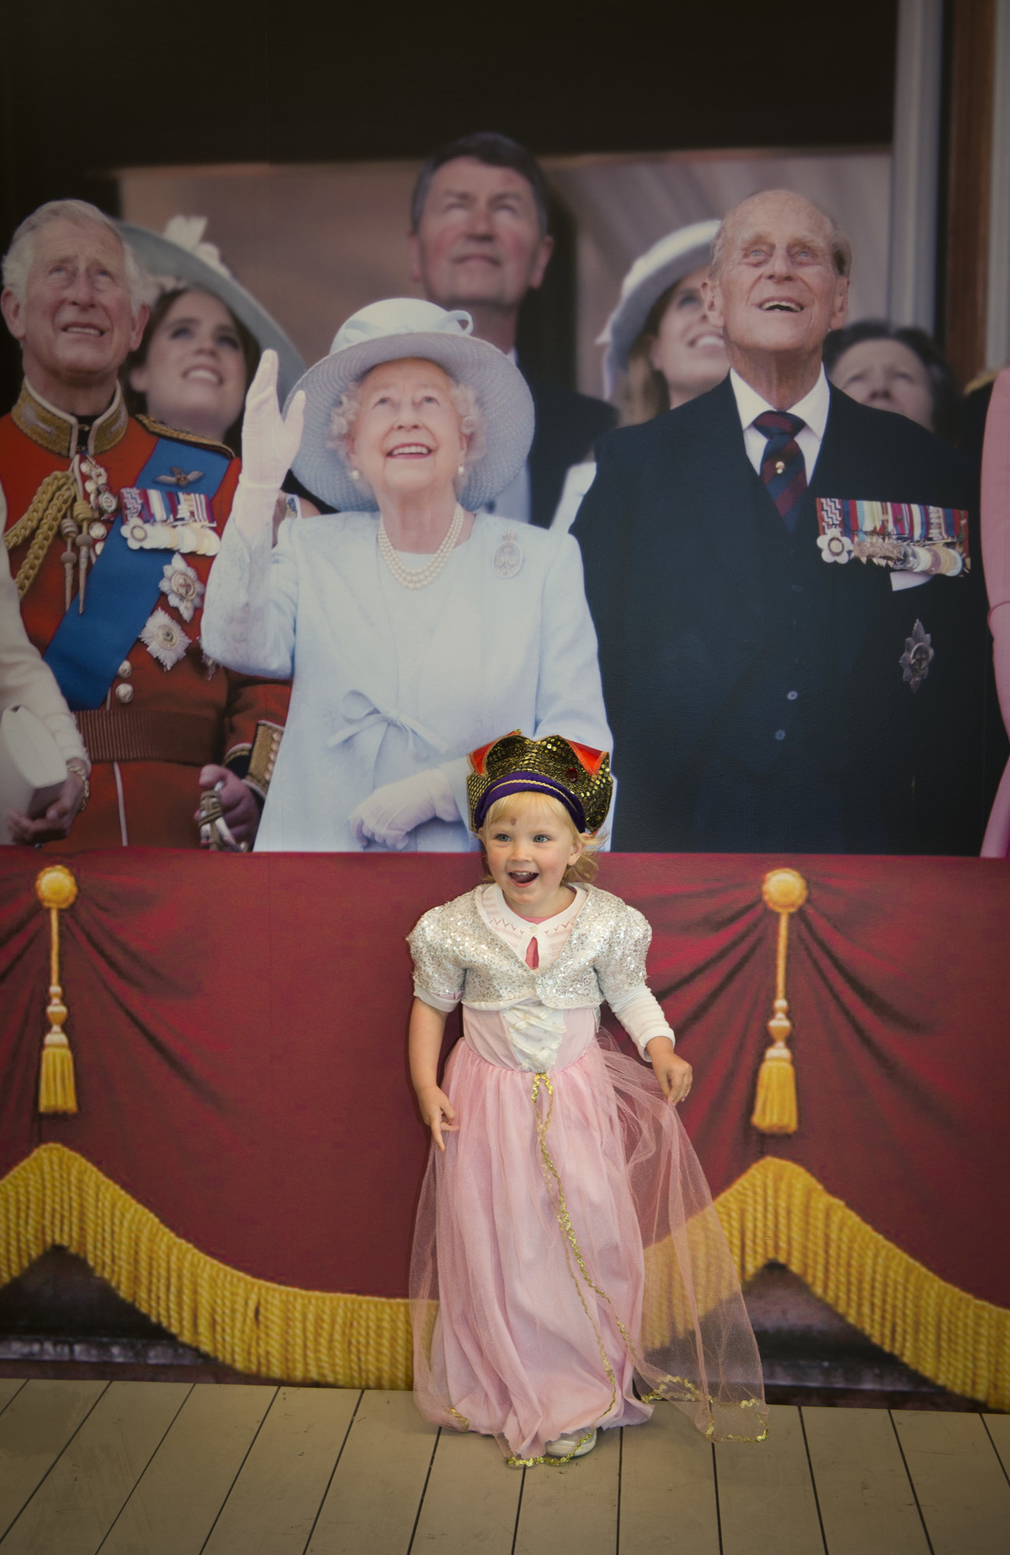 Child dressed as a princess at Buckingham Palace